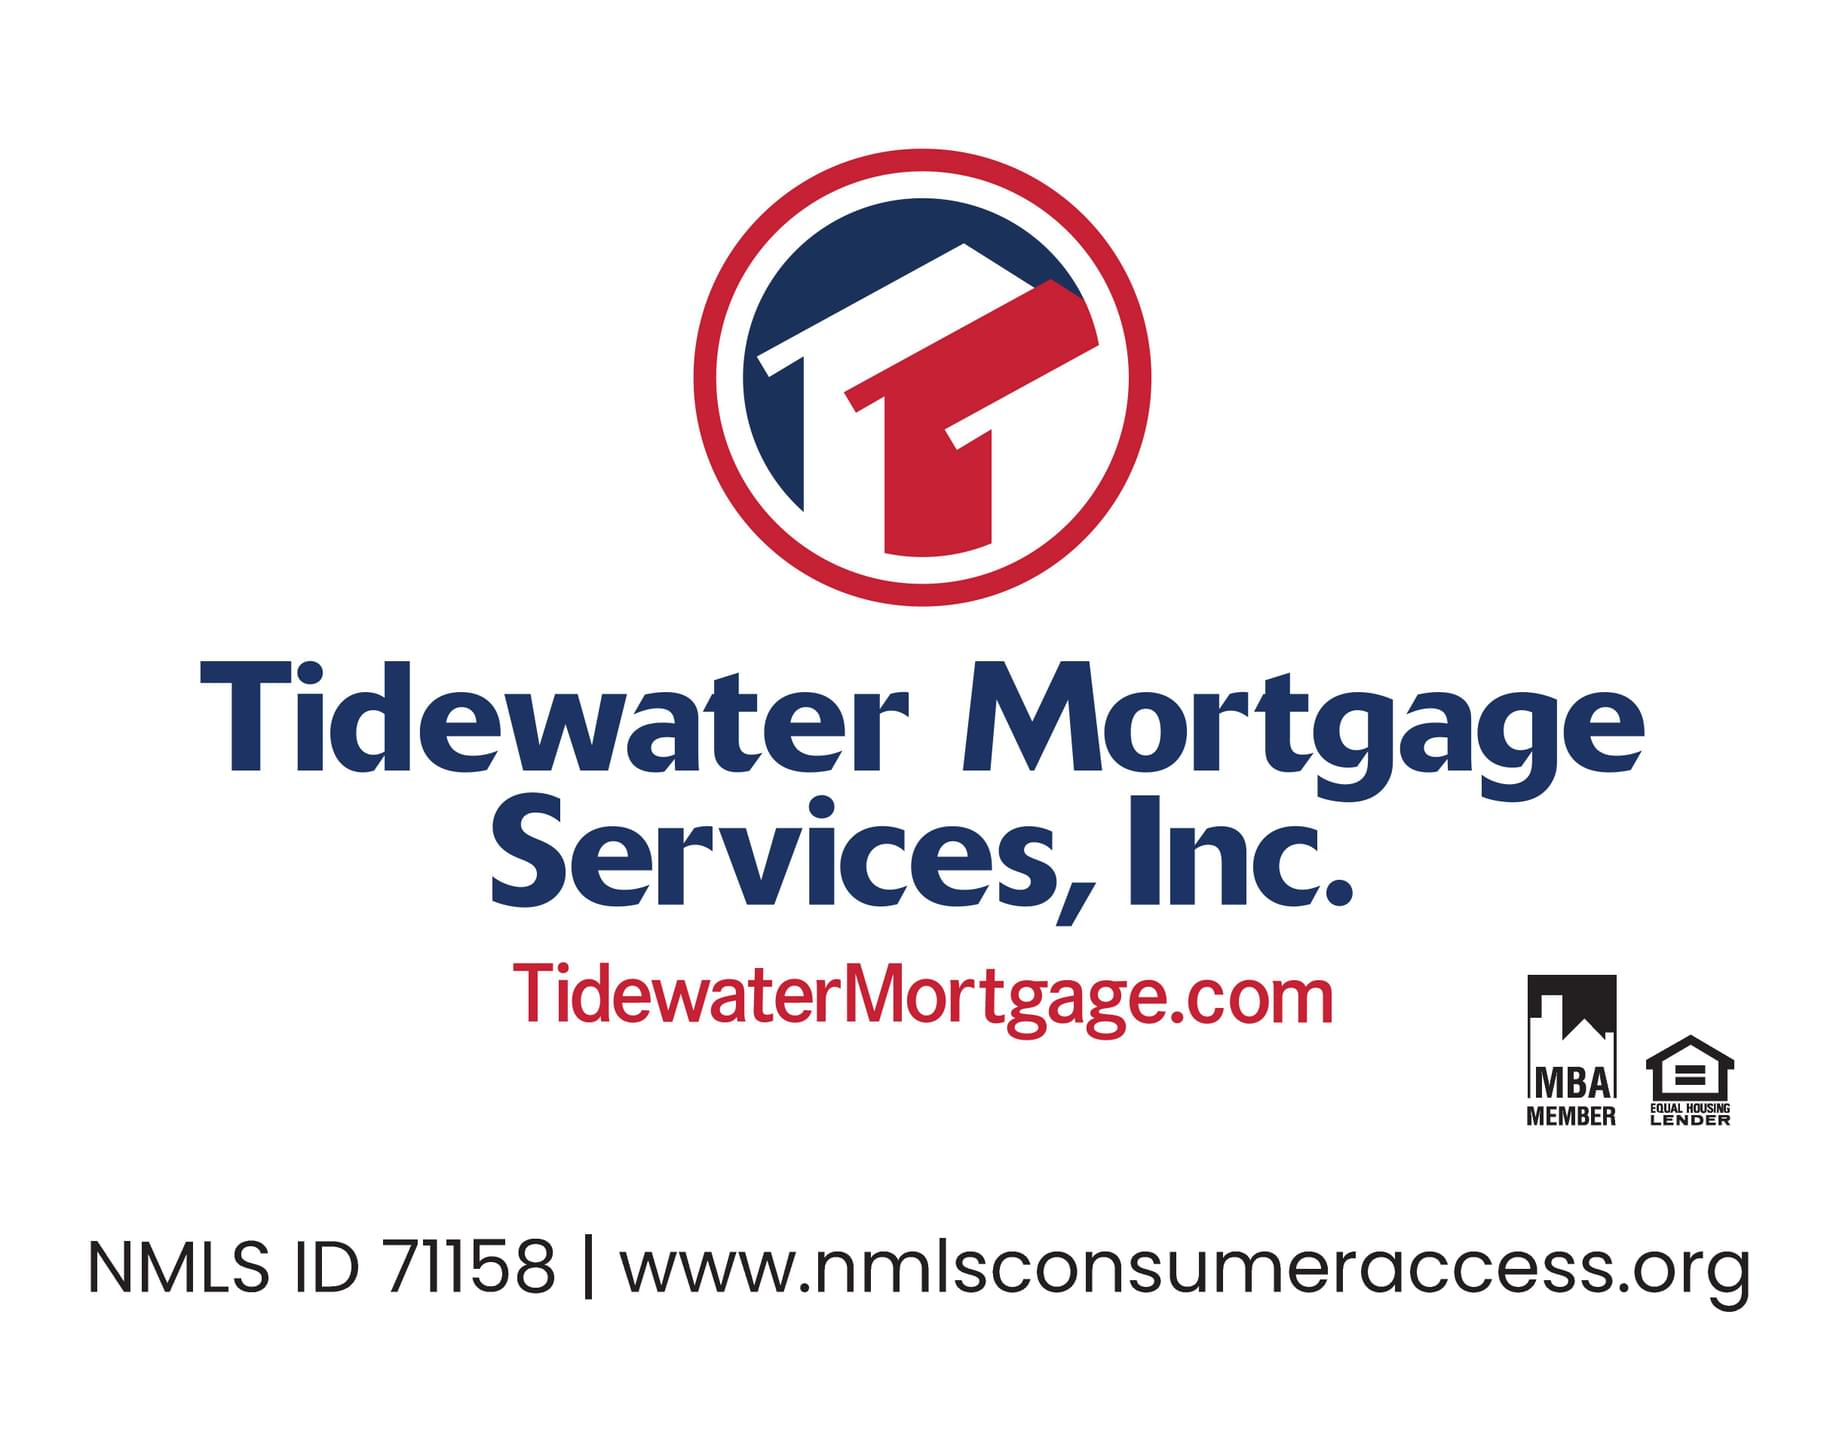 Why Tidewater Mortgage Services?